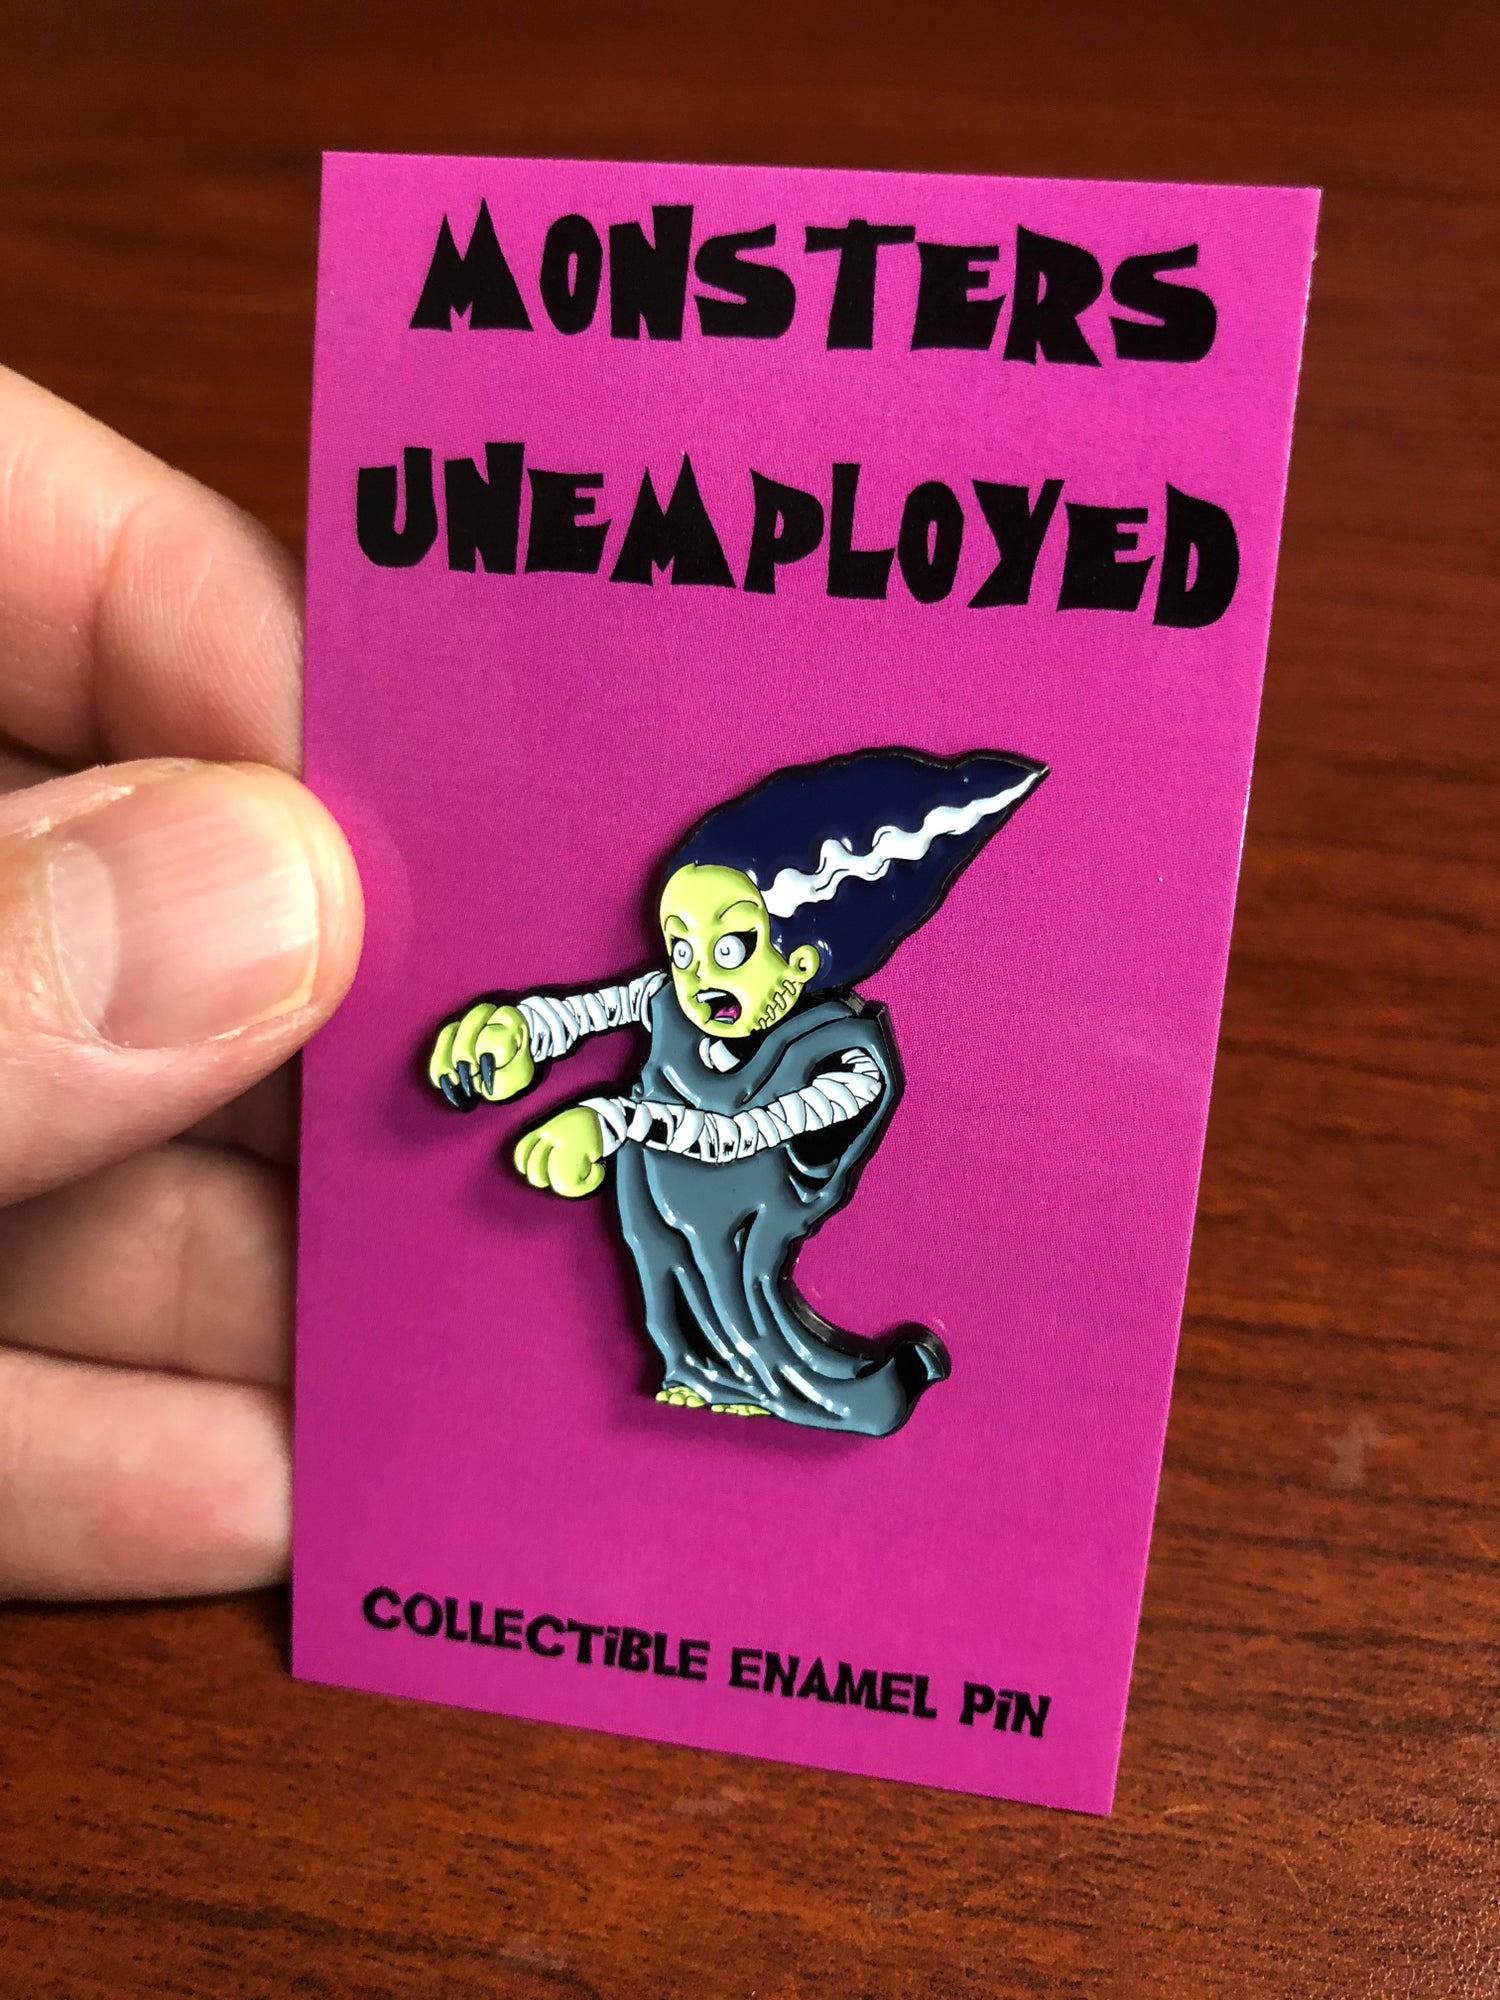 Image of Monsters Unemployed Enamel Pin #1: The Bride